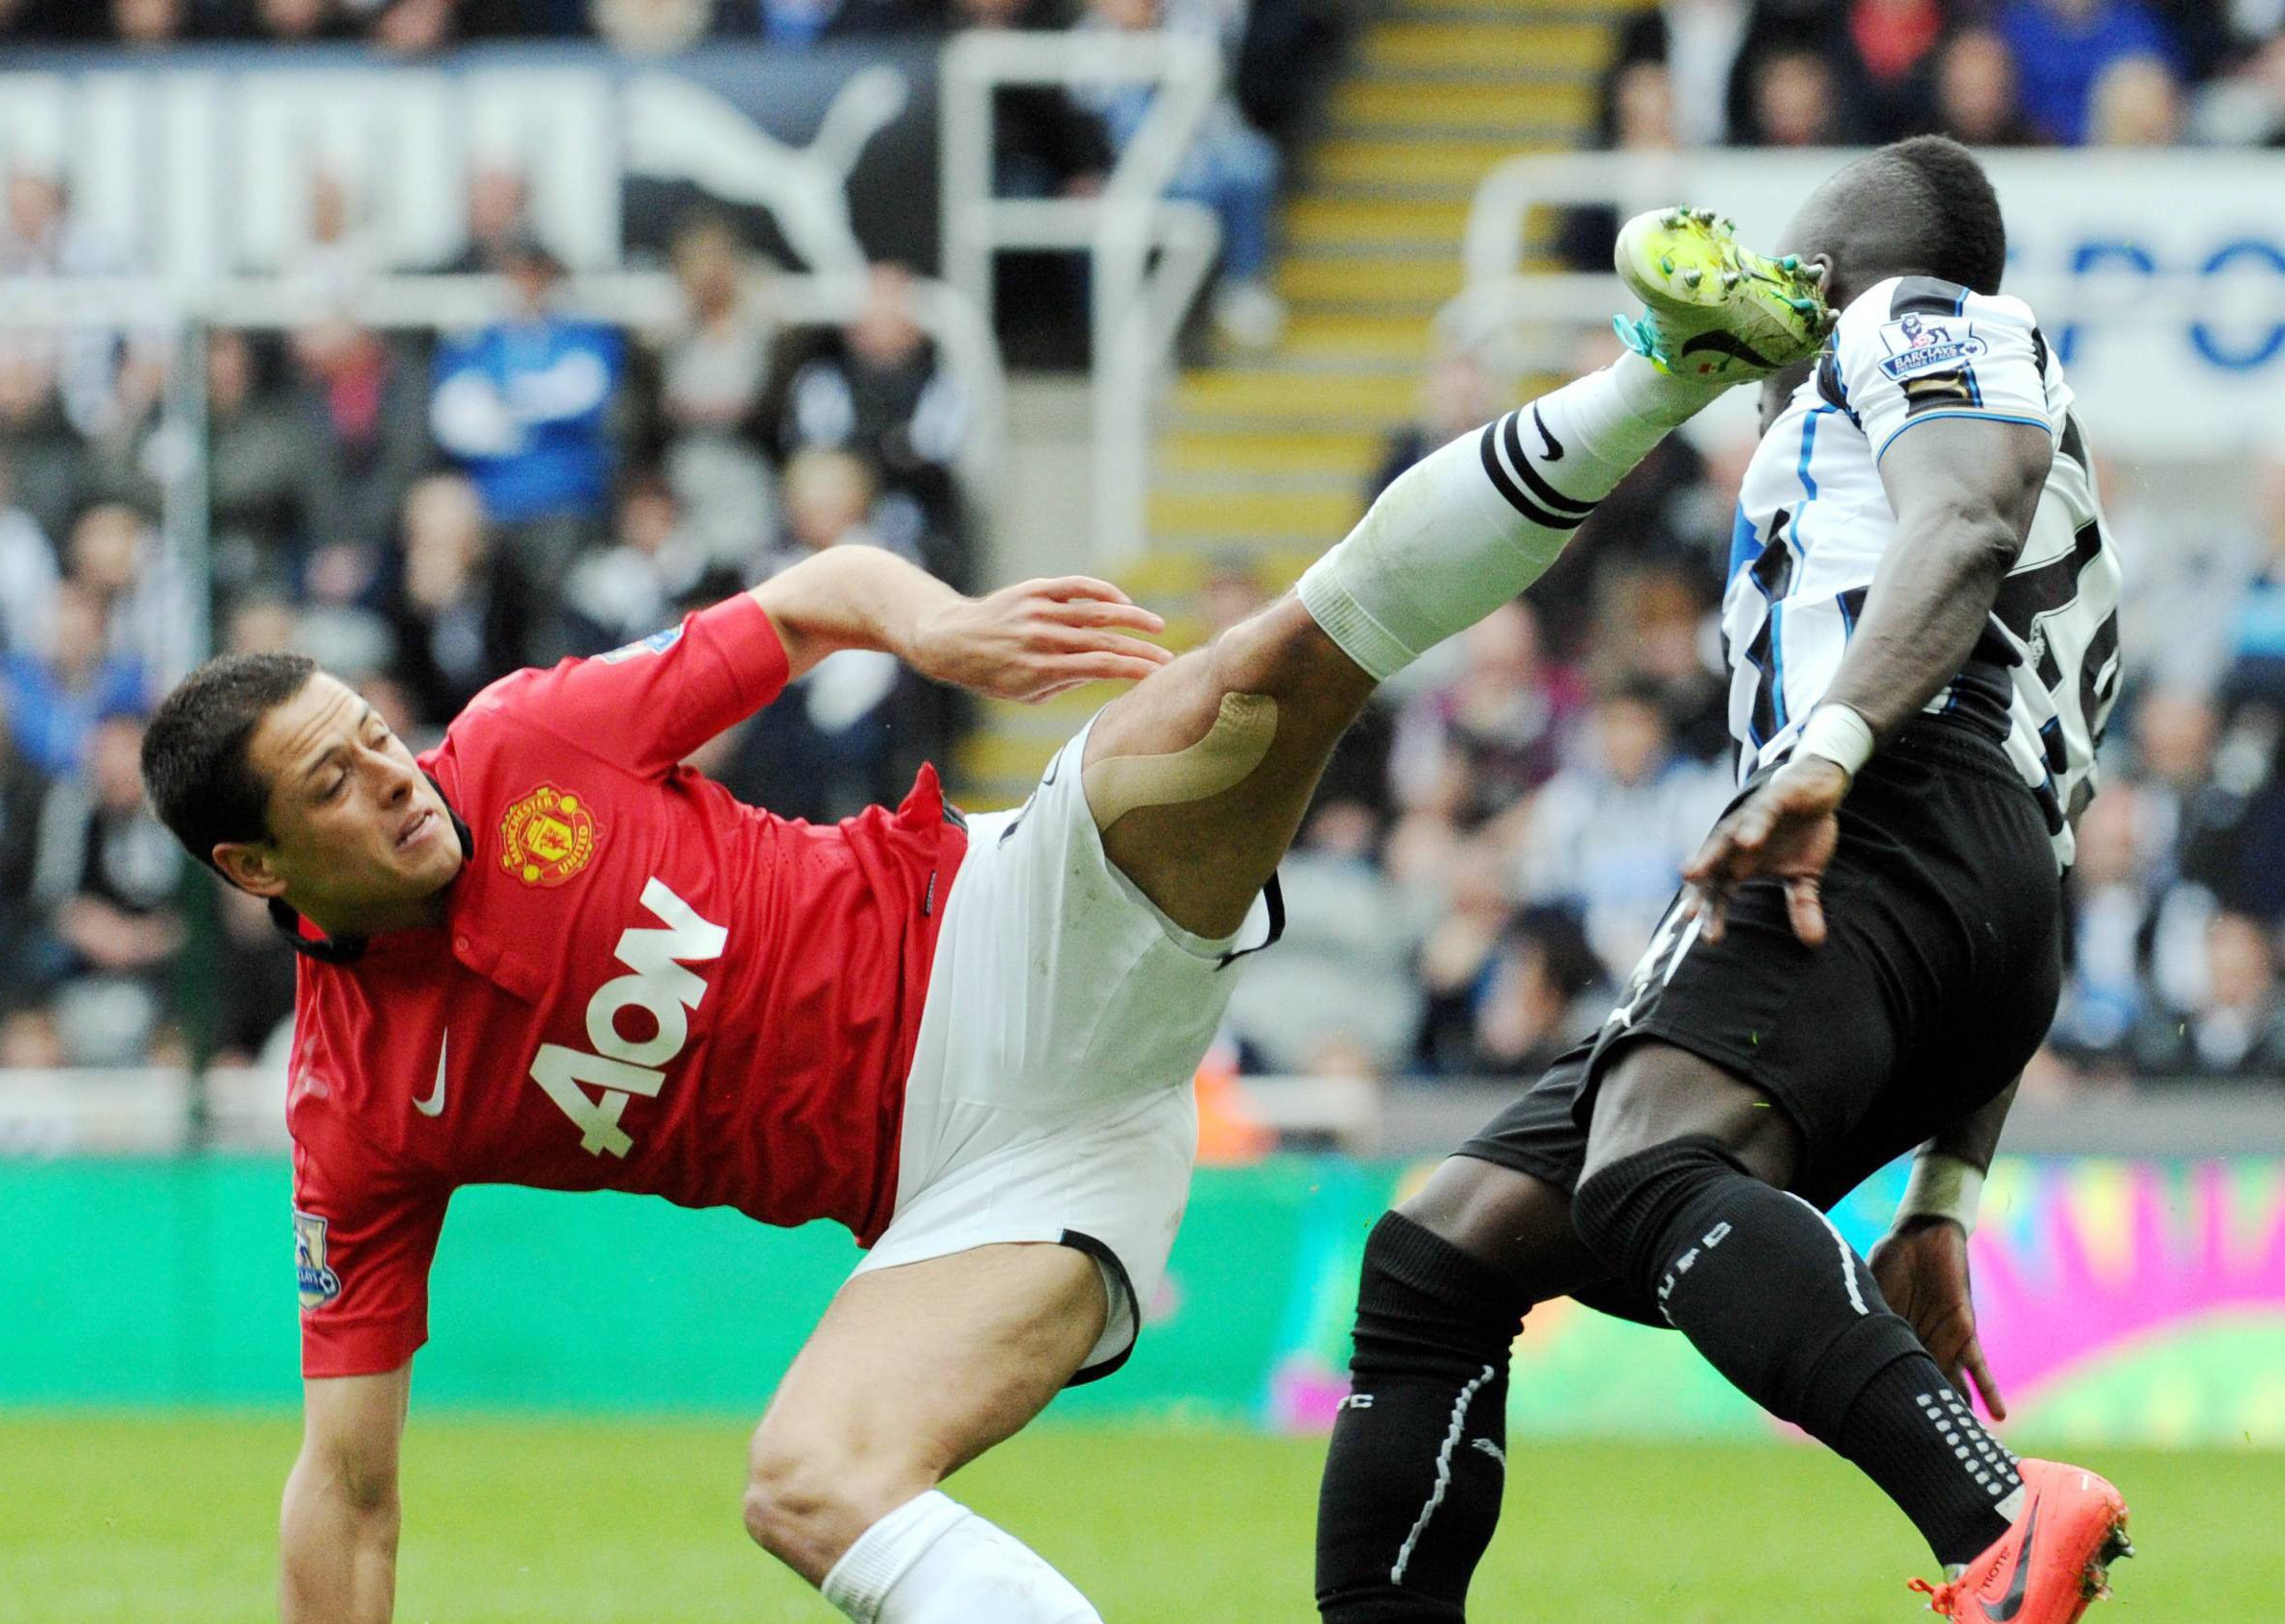 HIGH FOOT: Cheick Tiote faces a high challenge from Javier Hernandez